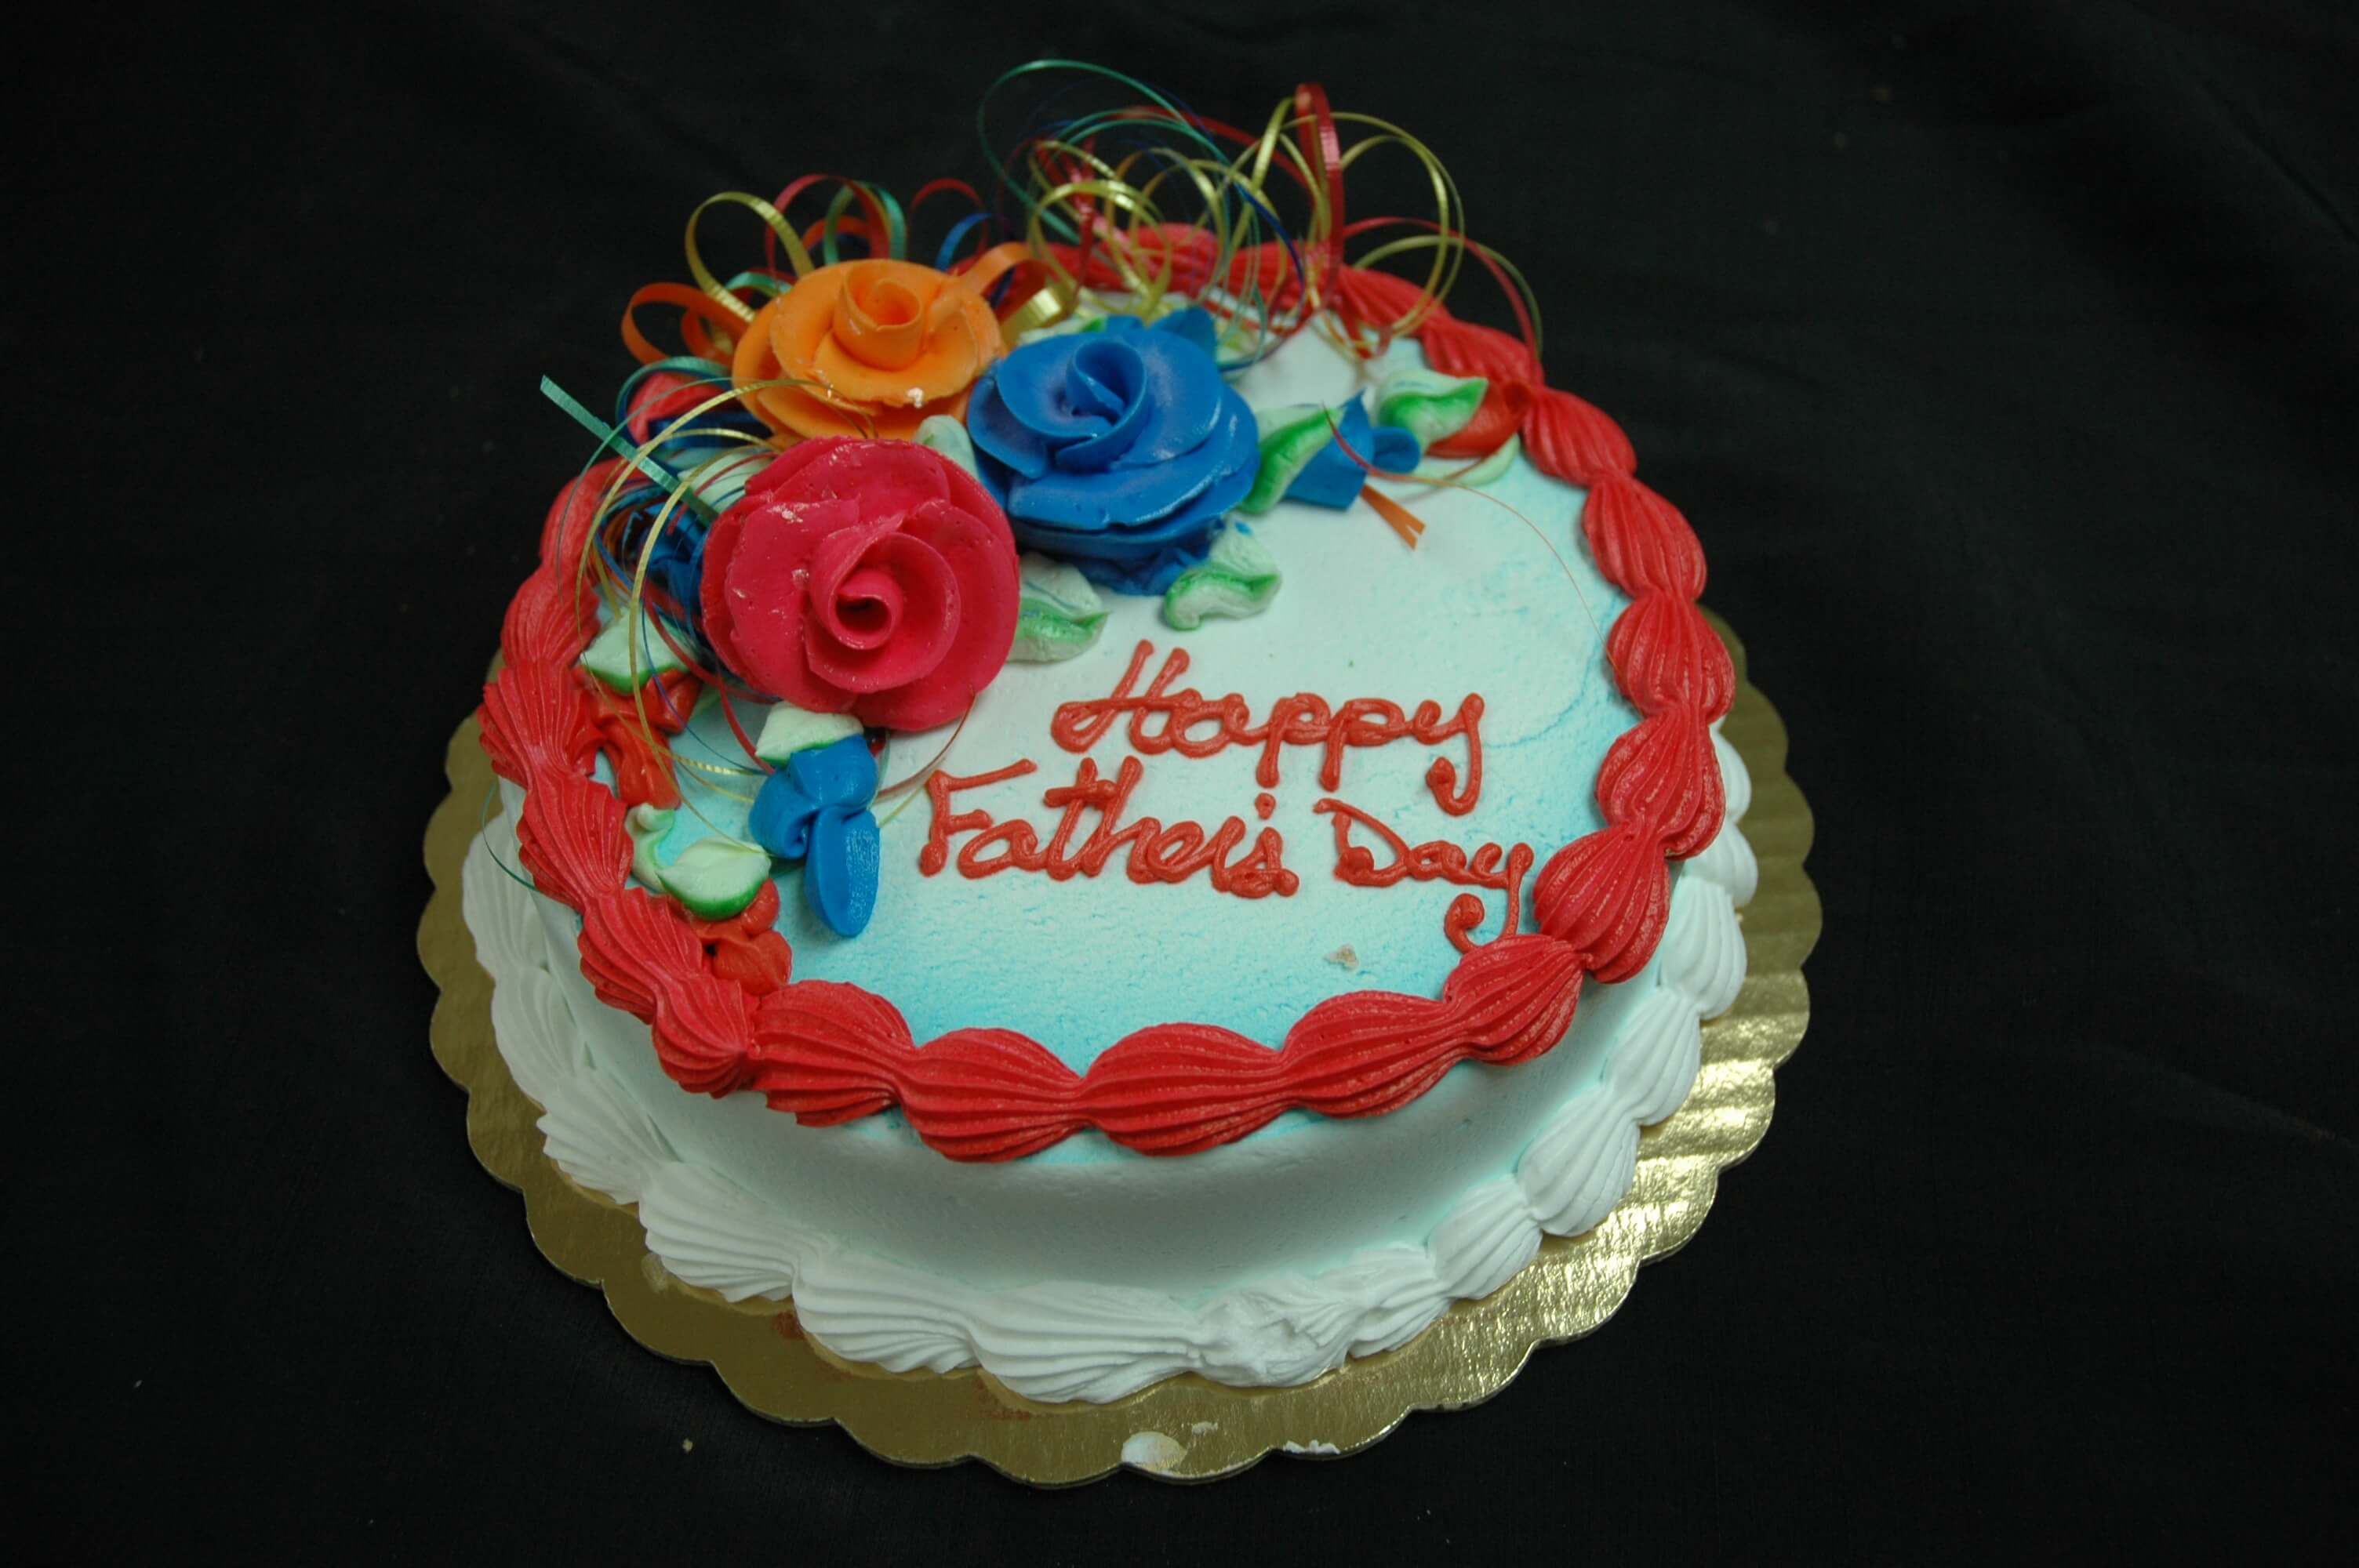 McArthur's Bakery Custom Cake with Bright Colored Roses